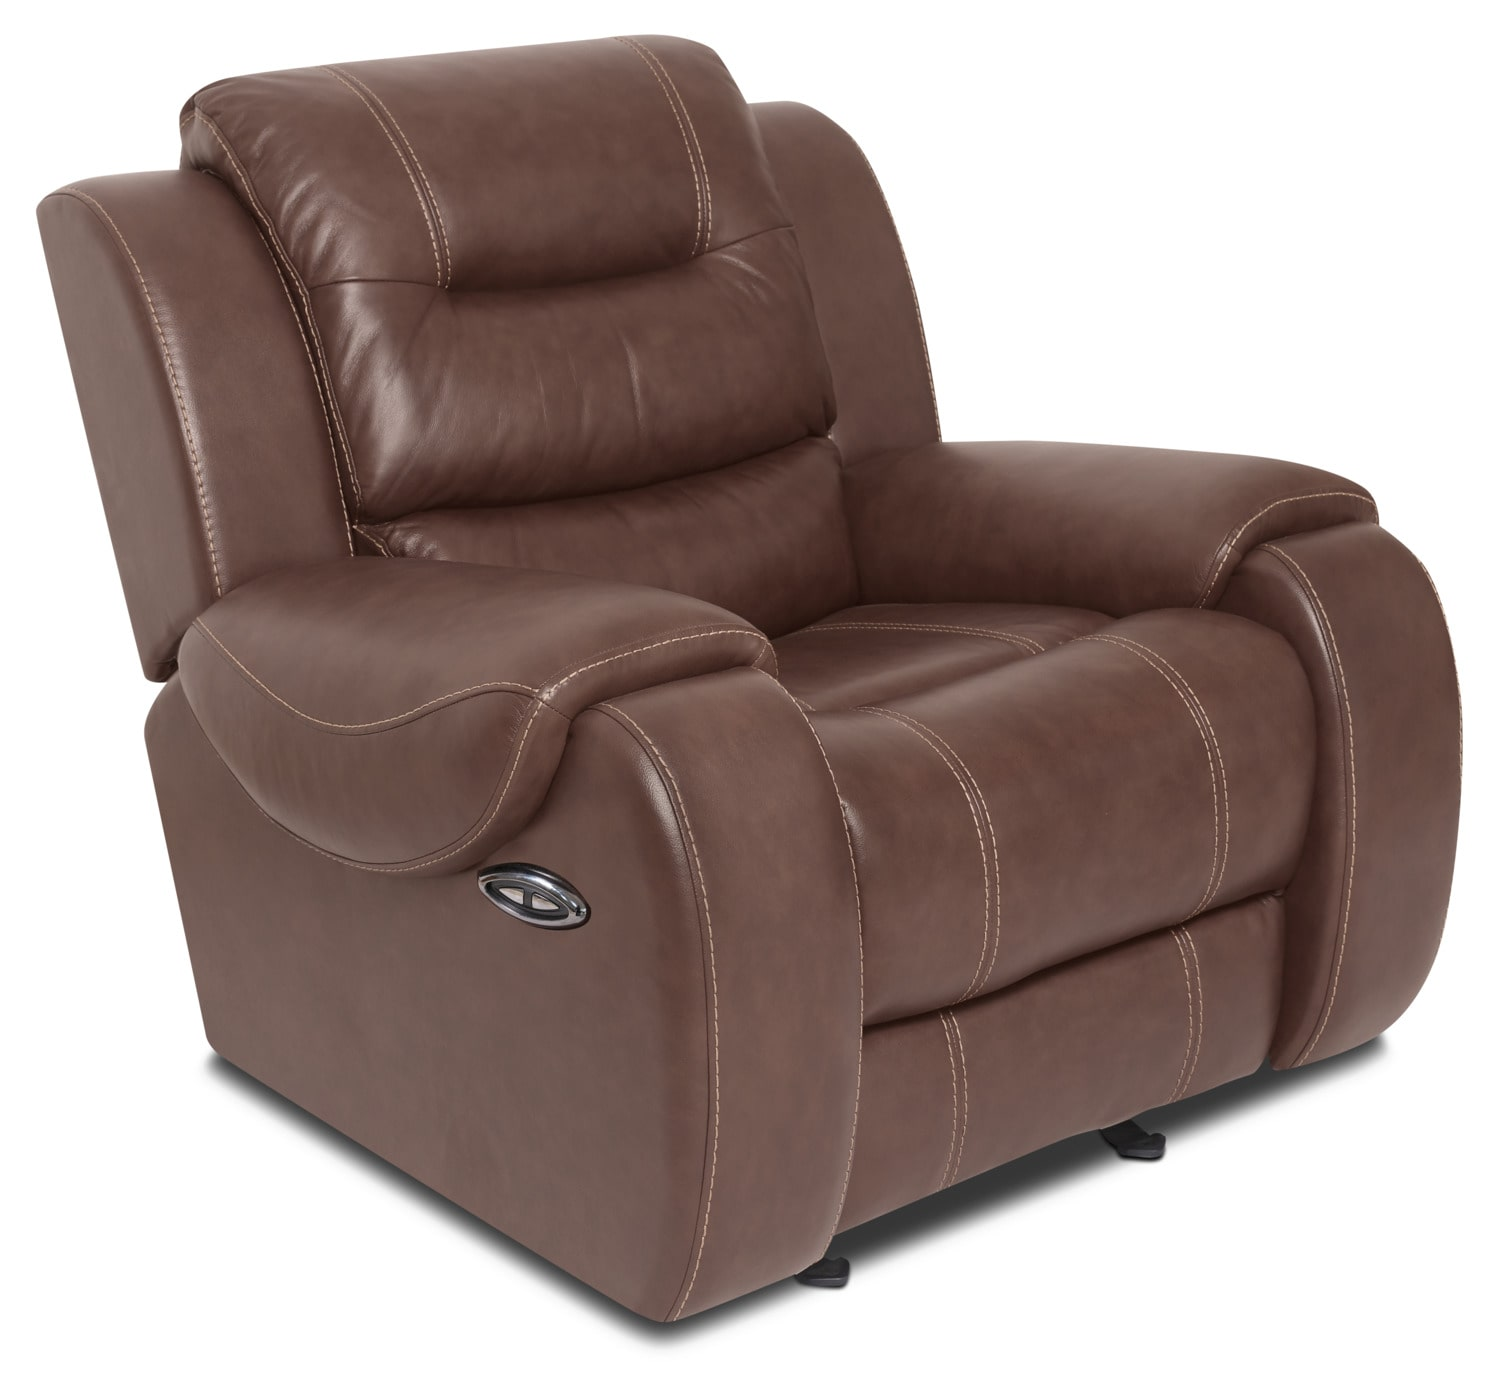 Nick Genuine Leather Power Reclining Chair – Brown